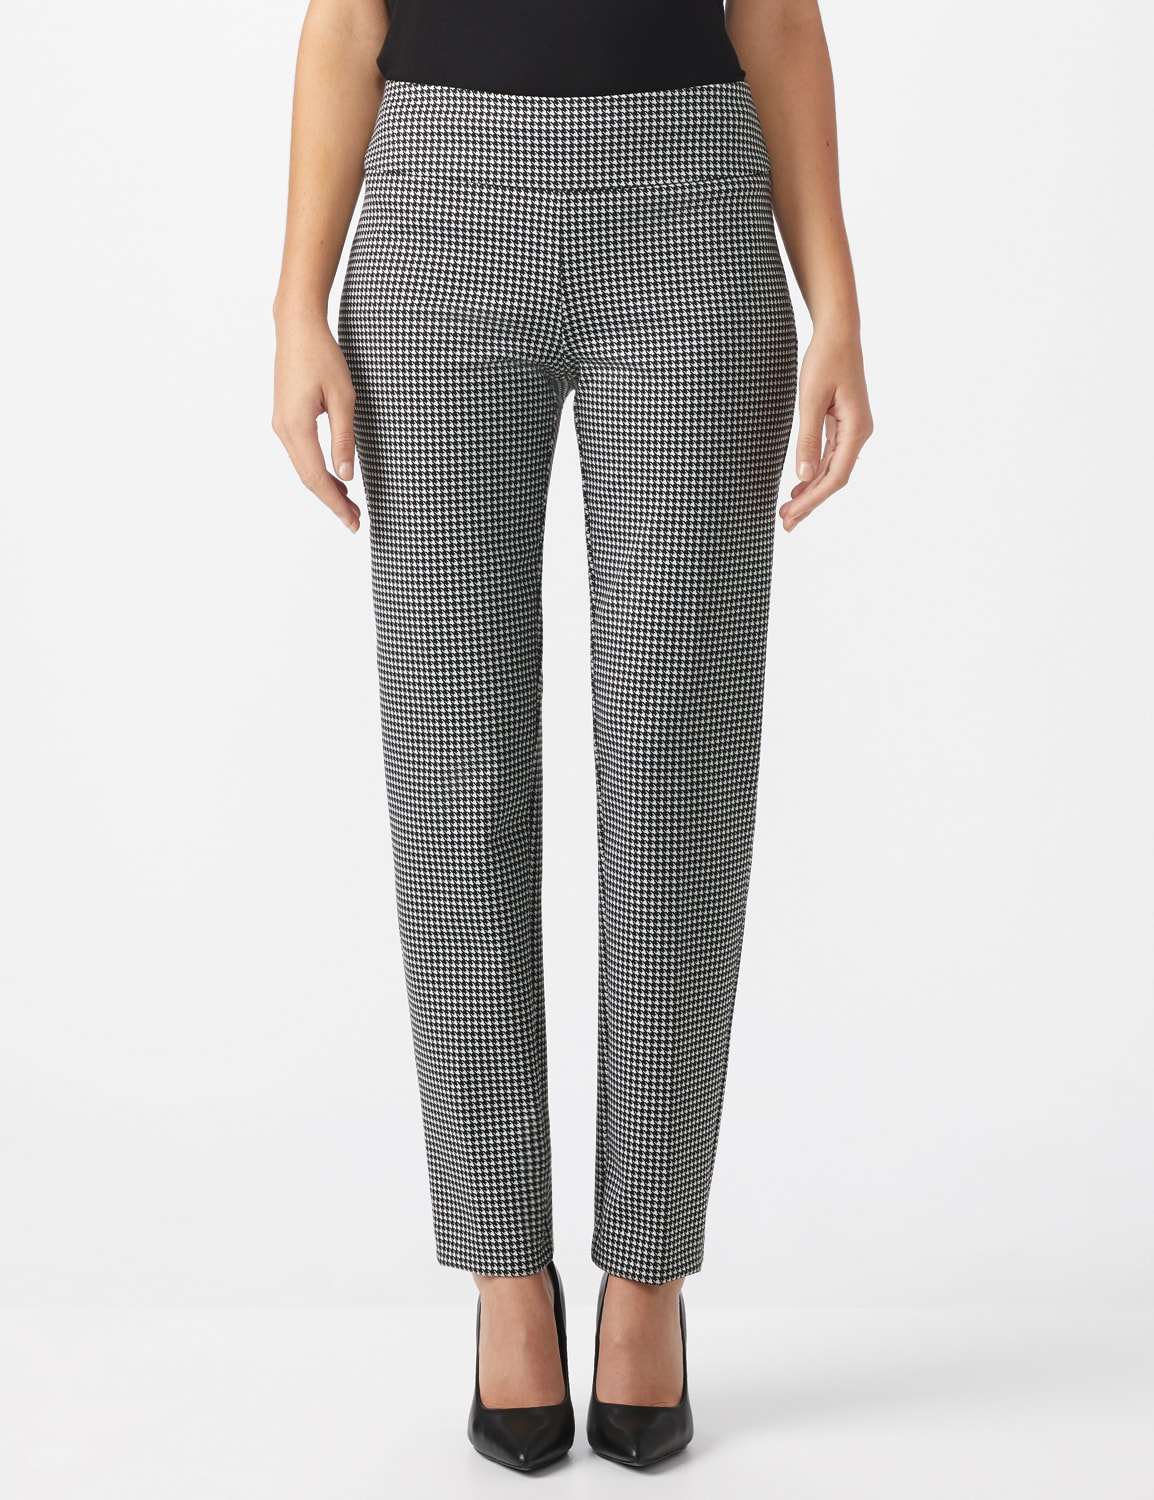 Pull On Houndstooth Print Compression Pant - Black/Sugar swizzle - Front